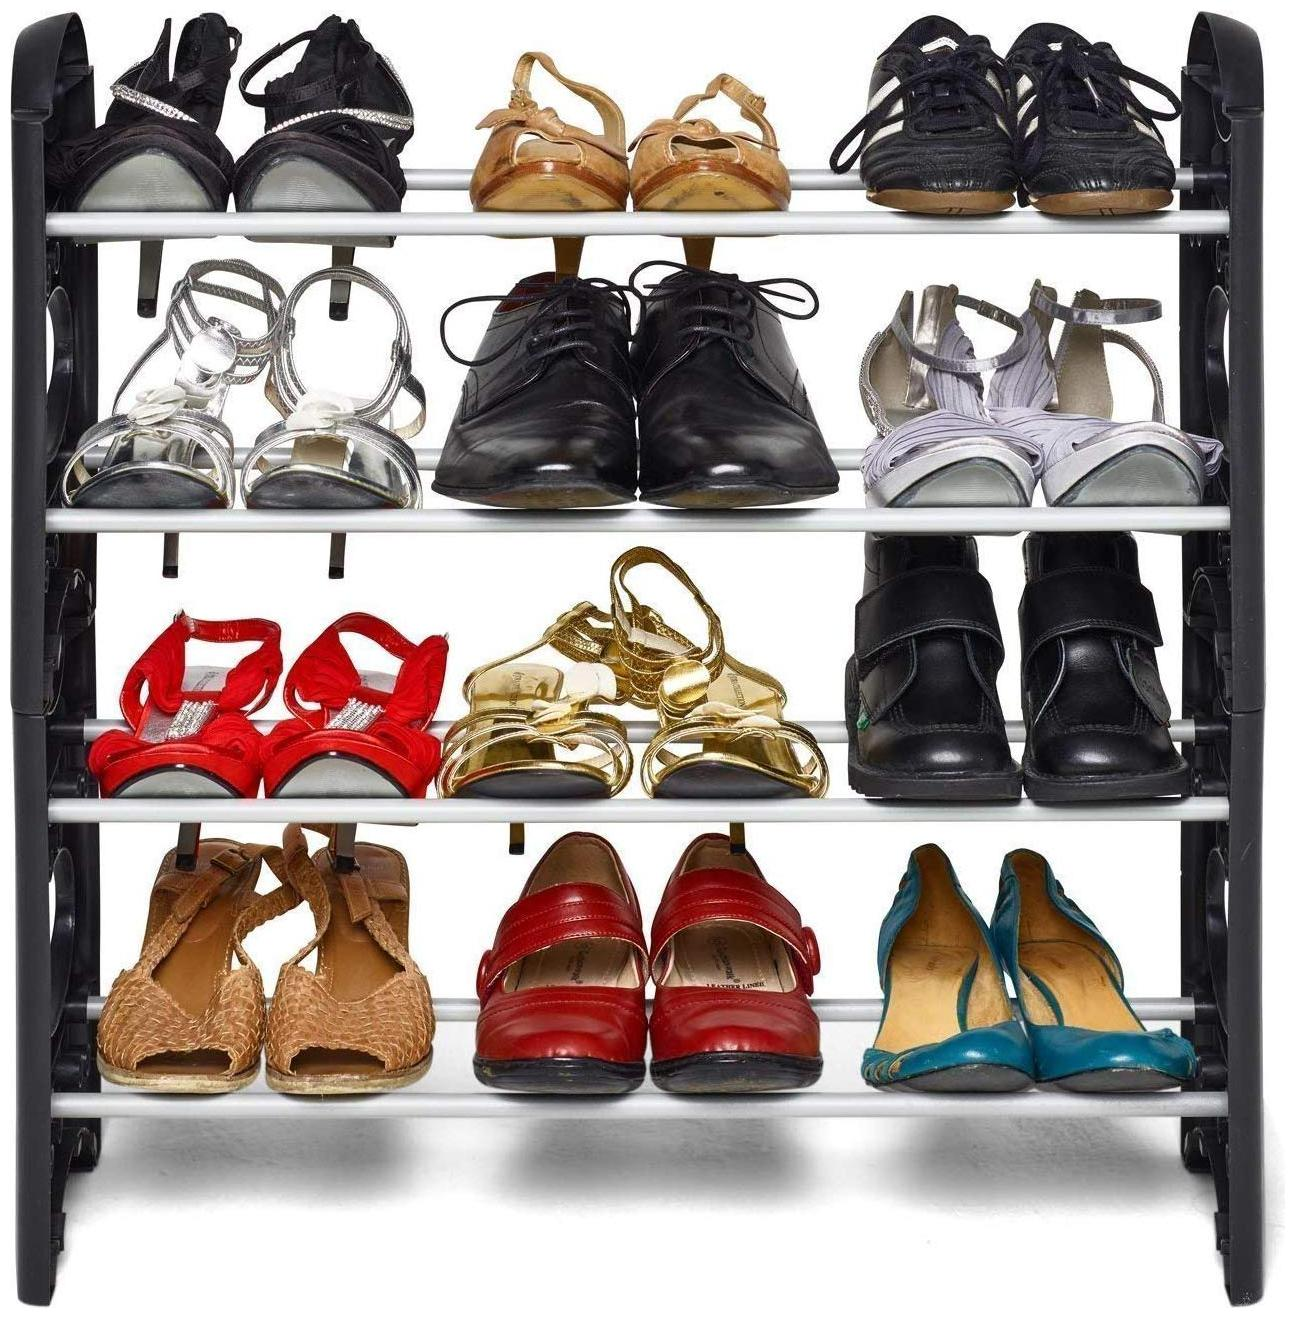 MARKETWALA  SHOE RACK HOME/KITCHEN STORAGE PLASTIC COLLAPSIBLE SHOE STAND 4 SHELVES  PACK OF 1 , BLACK